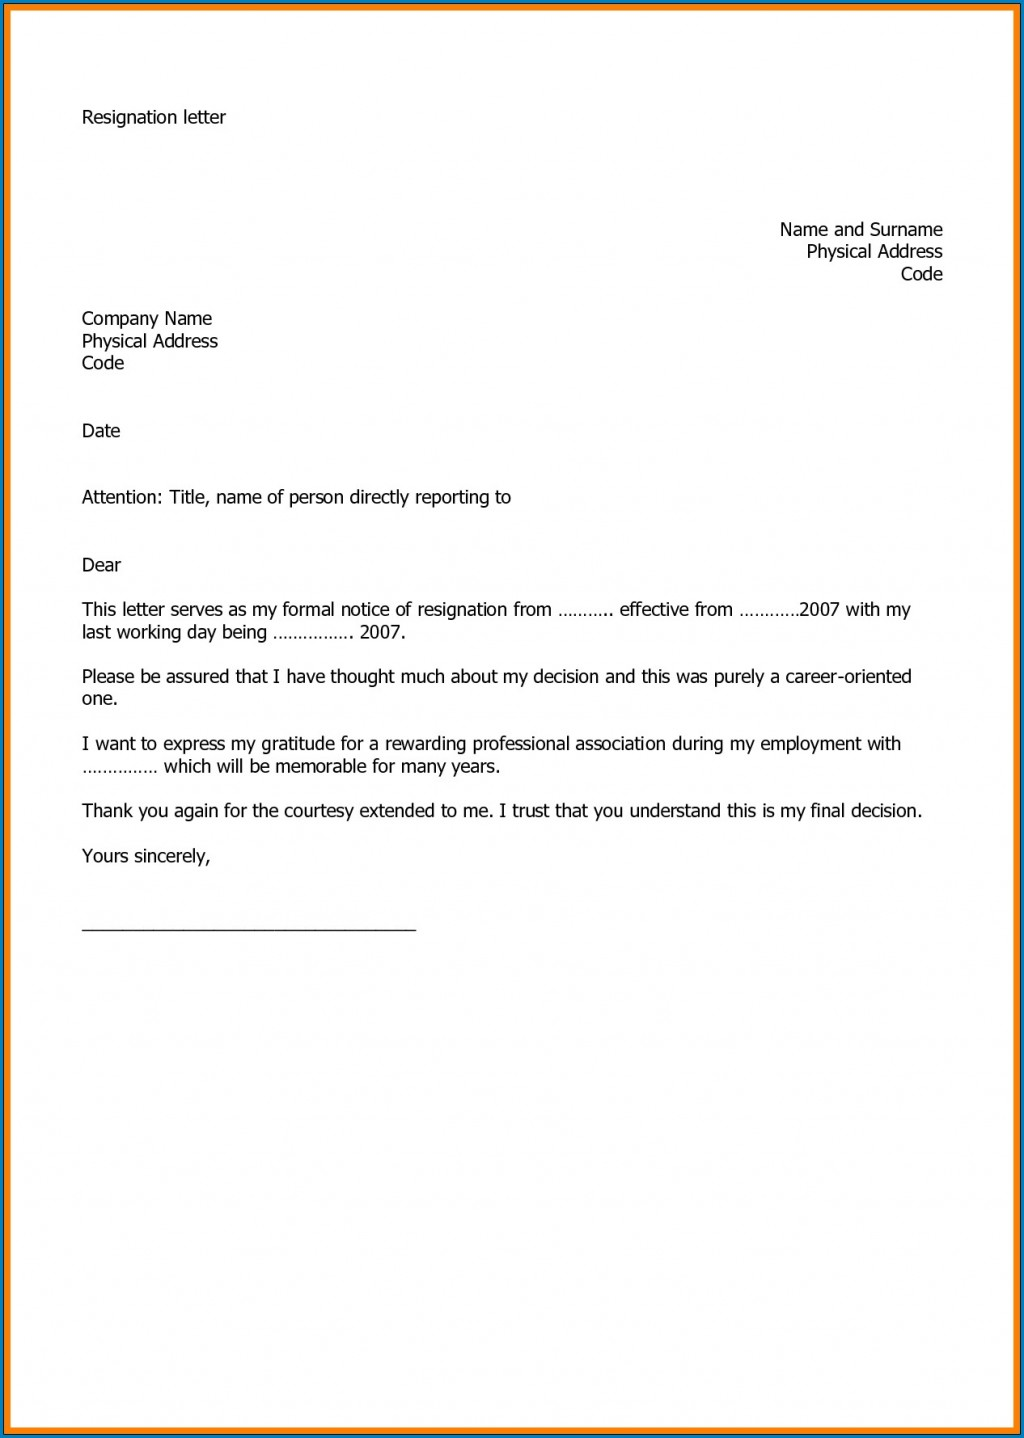 005 Marvelou Professional Resignation Letter Template Design  Best Format Pdf How To Write ALarge